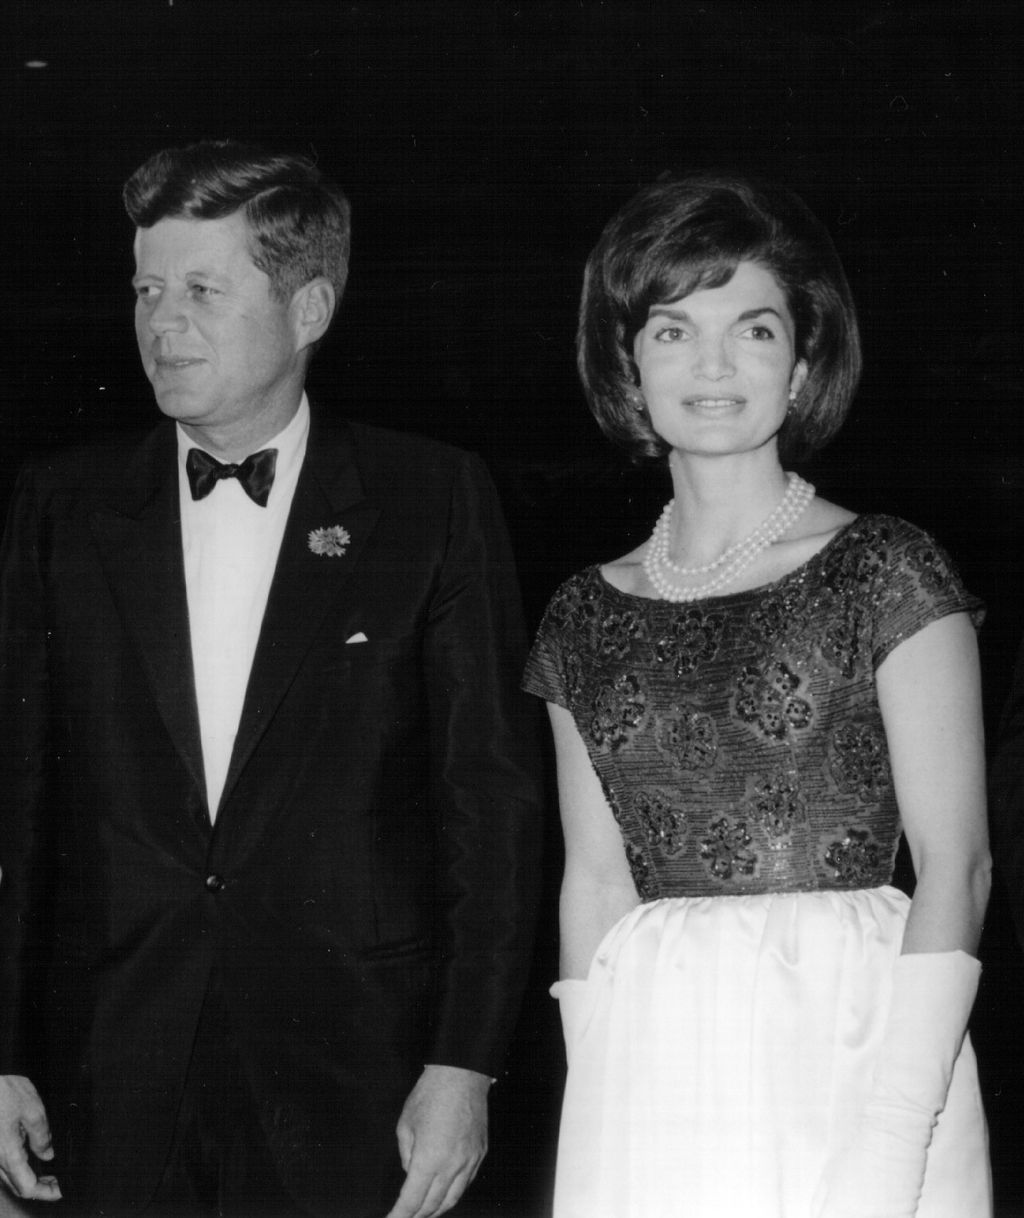 381091 52: President John F. Kennedy speaks during a press conference as First Lady Jackie Kennedy looks on April 9, 1963 at the White House House. (Photo by National Archive/Newsmakers)